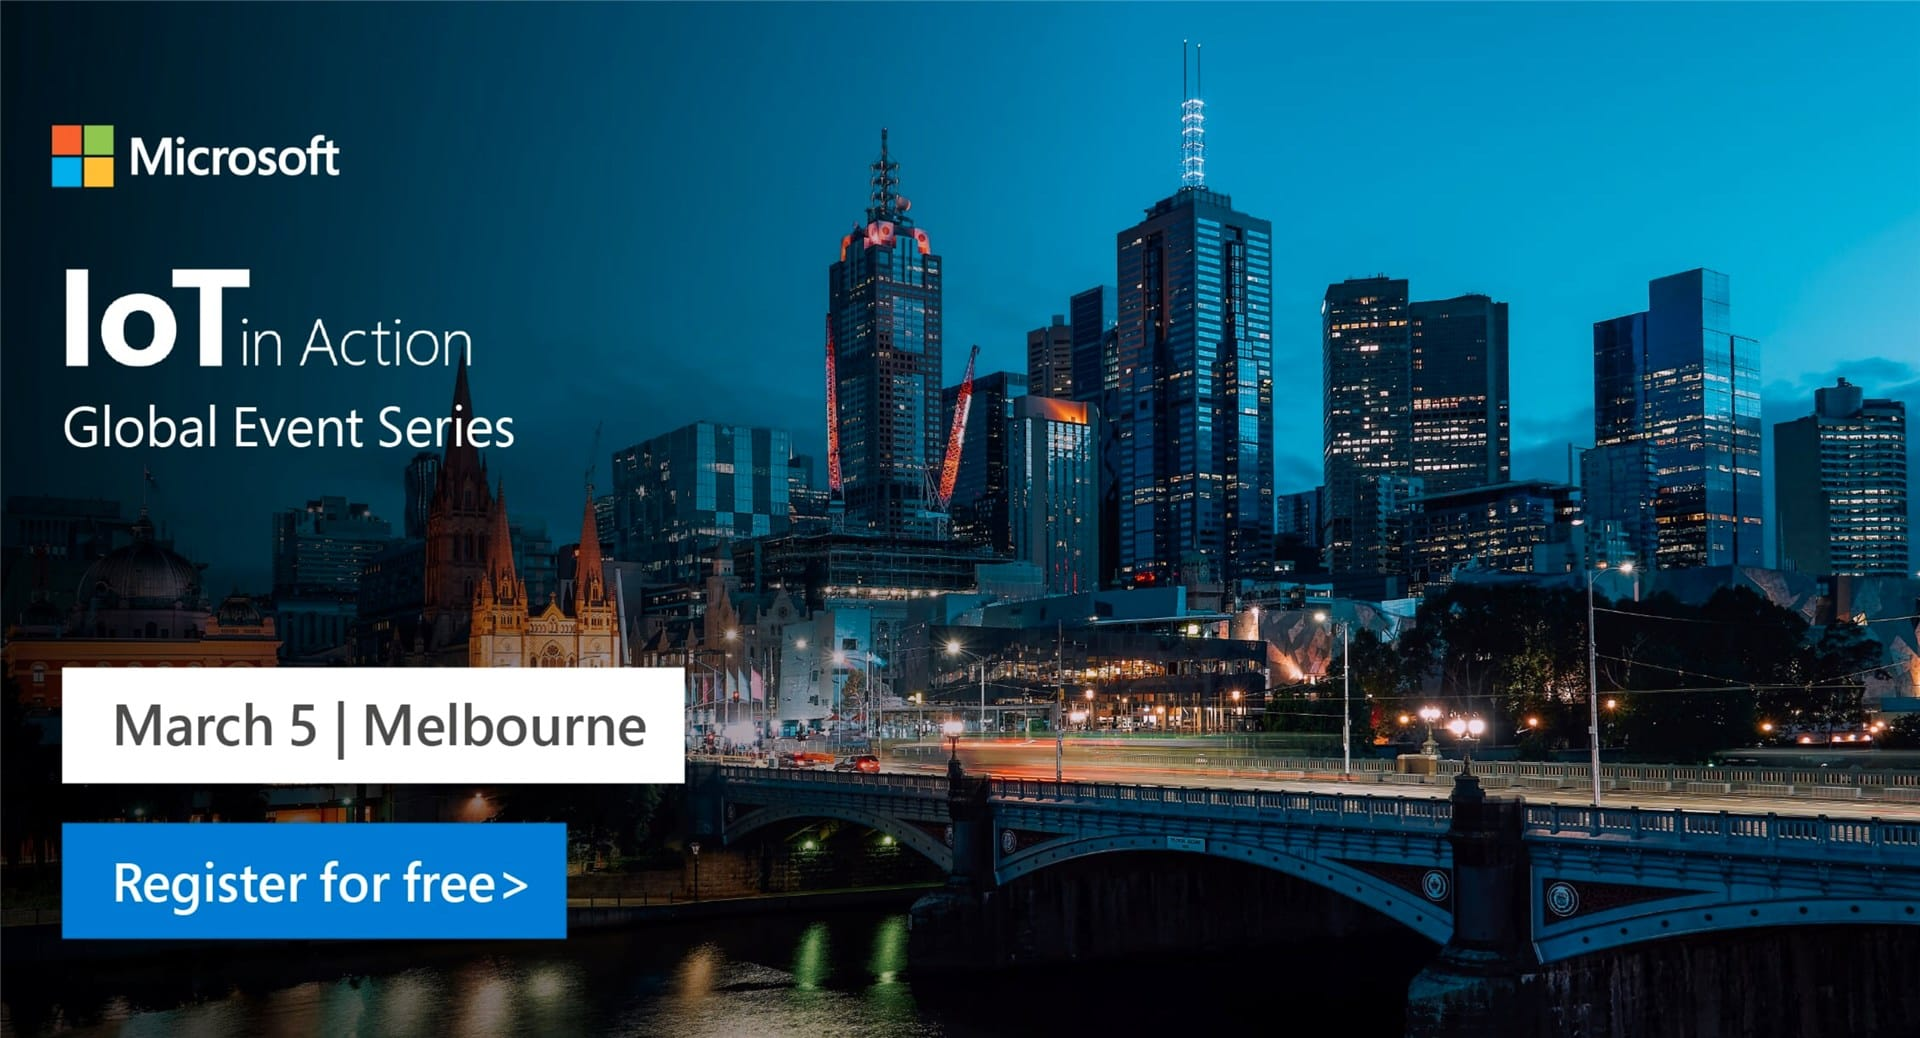 Microsoft IoT in Action Event for this year is being held in Melbourne. Registration opens NOW